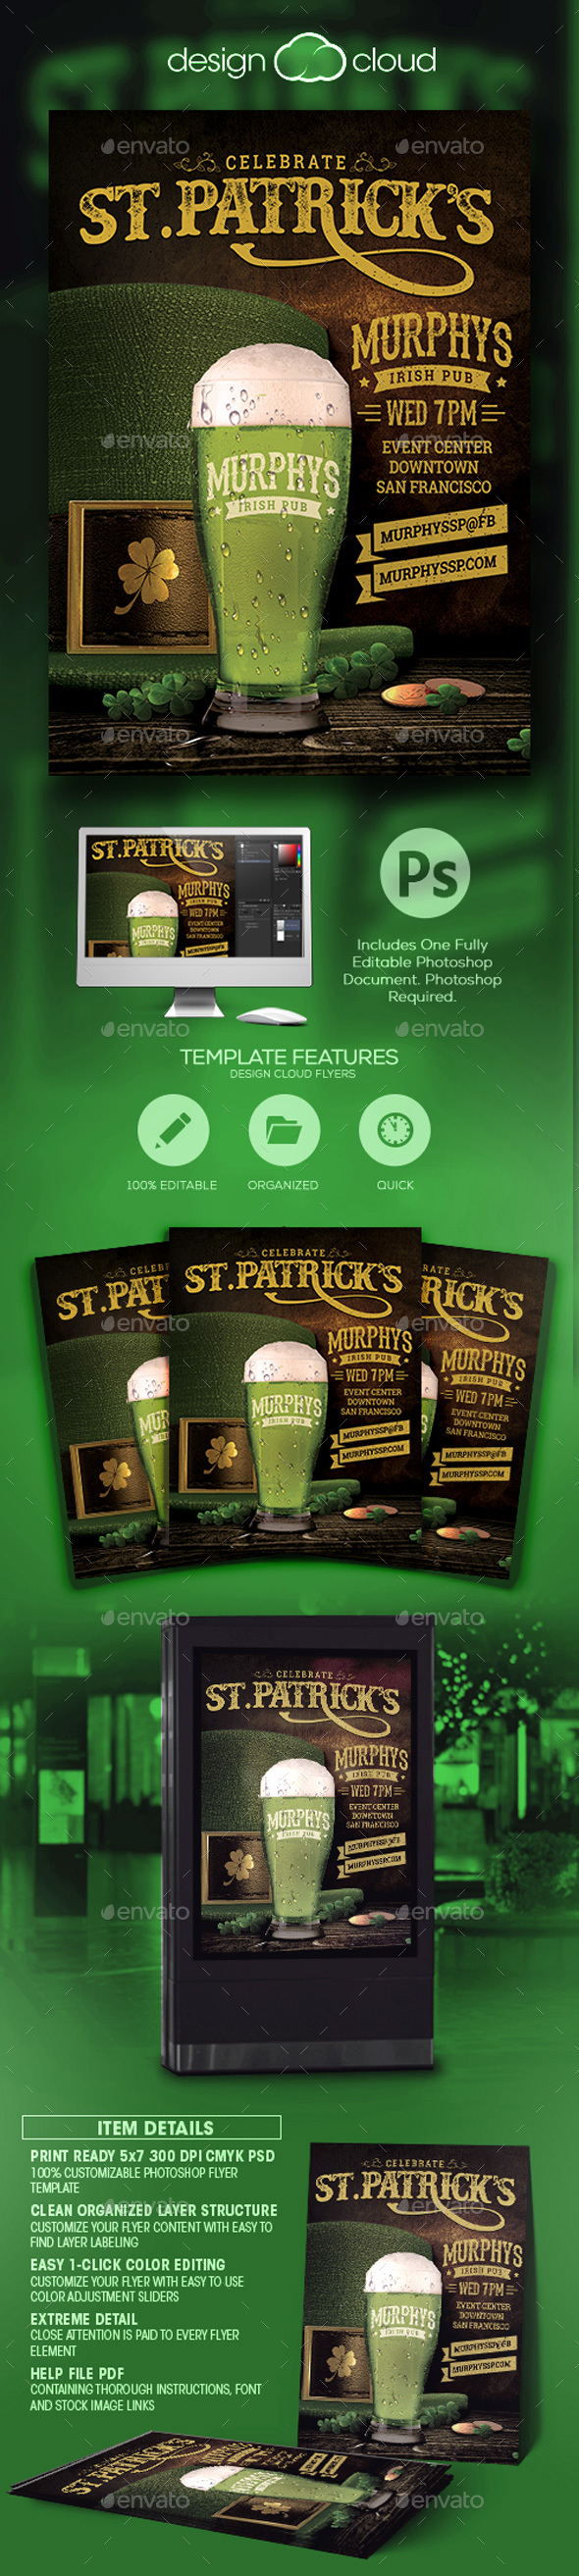 Saint Patrick's Day Event Flyer Template - Holidays Events